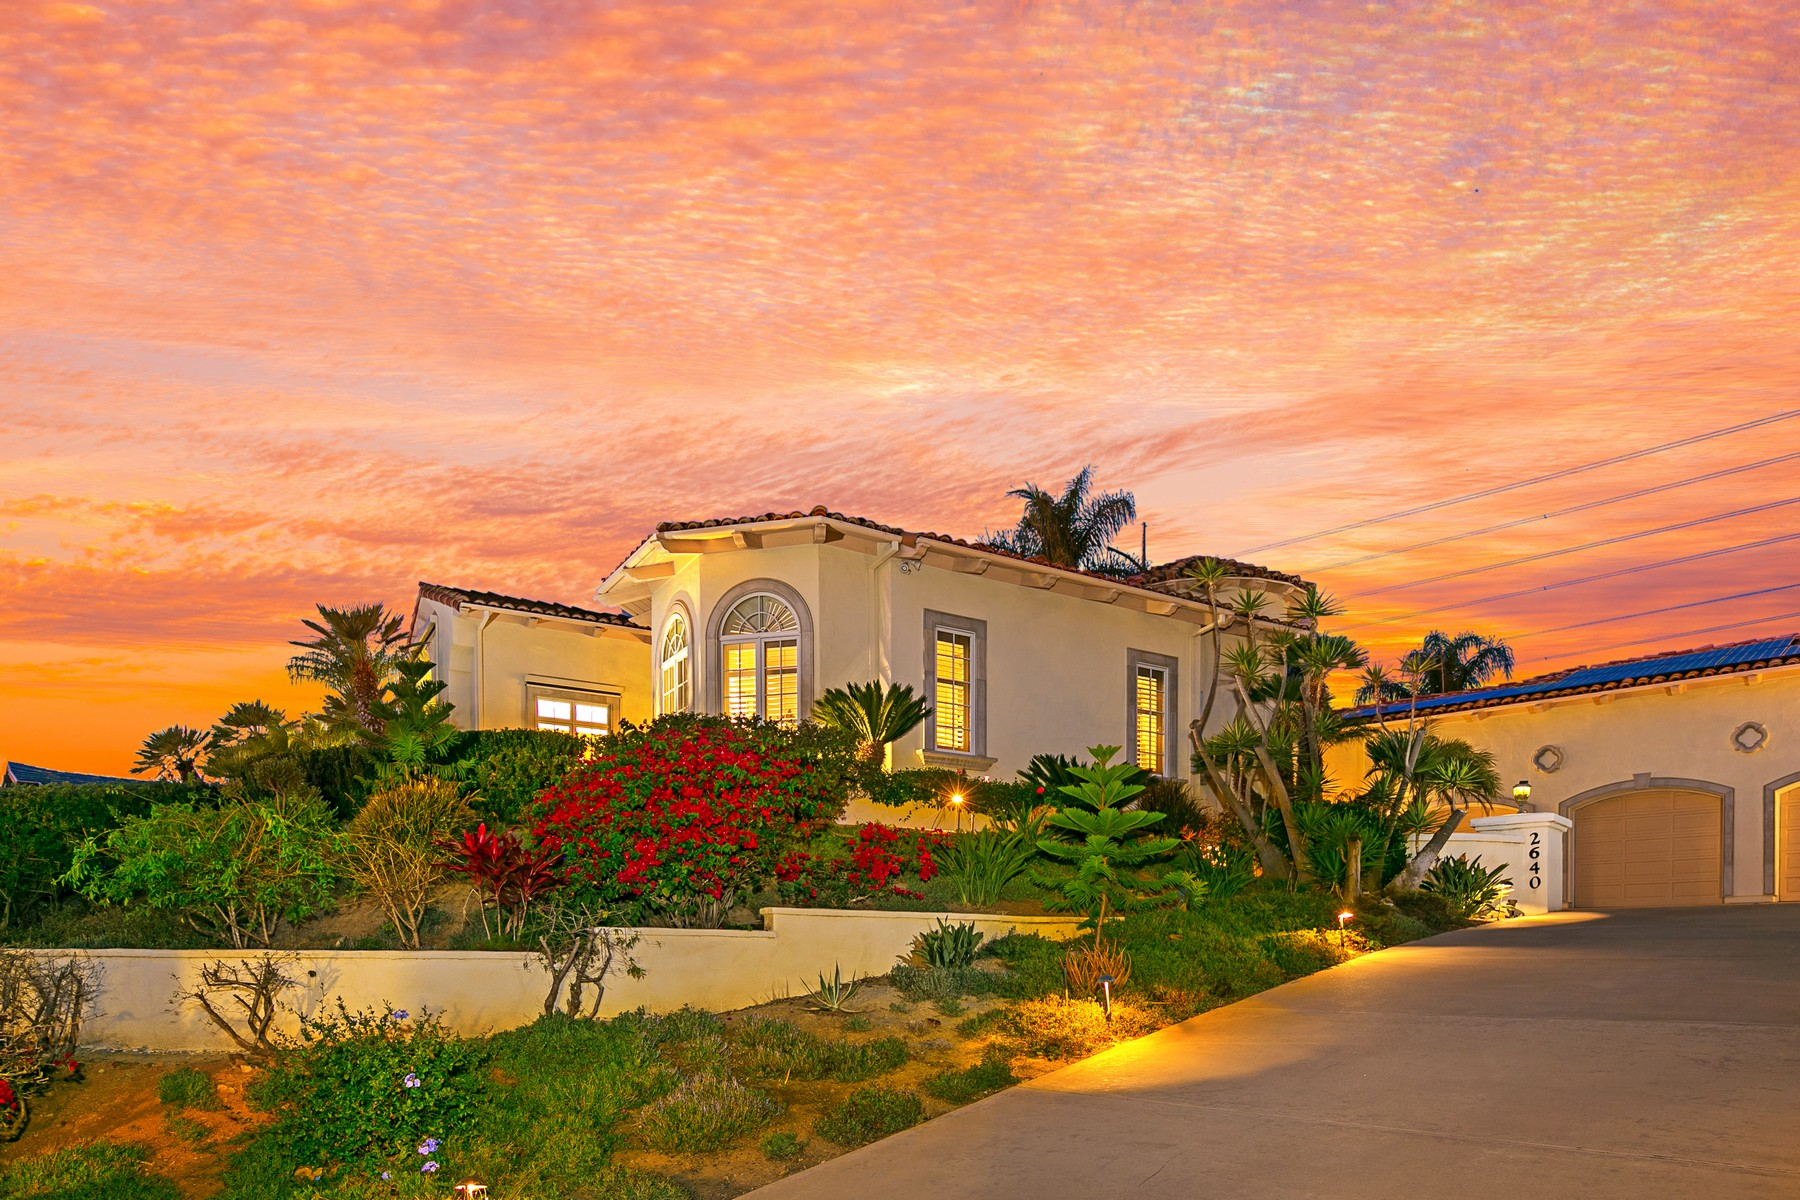 Single Family Home for Active at 2640 Acuna Court 2640 Acuna Court Carlsbad, California 92009 United States